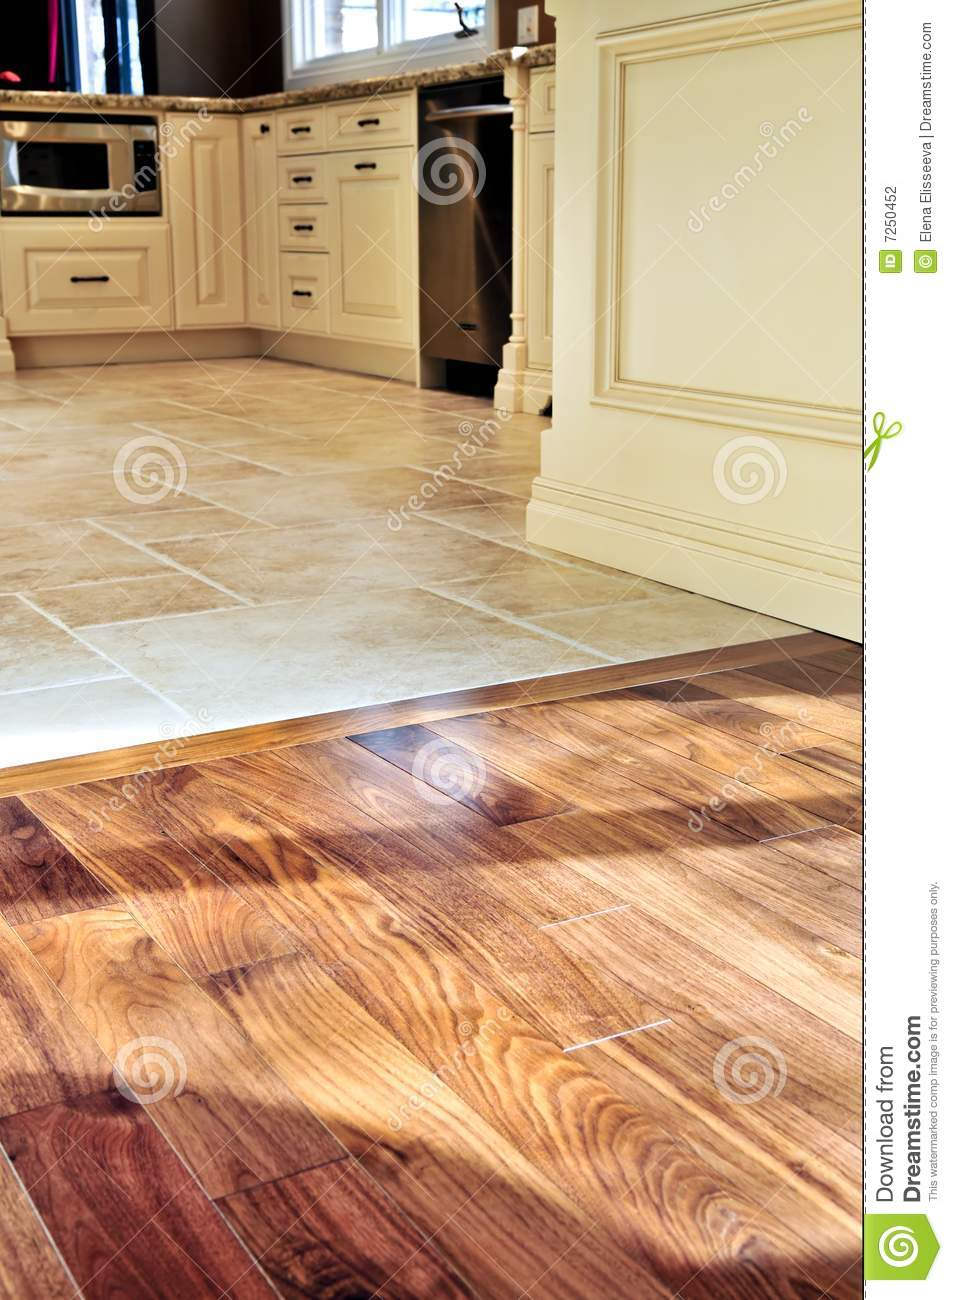 Hardwood and tile floor stock photo image of dining 7250452 for Which floor or what floor